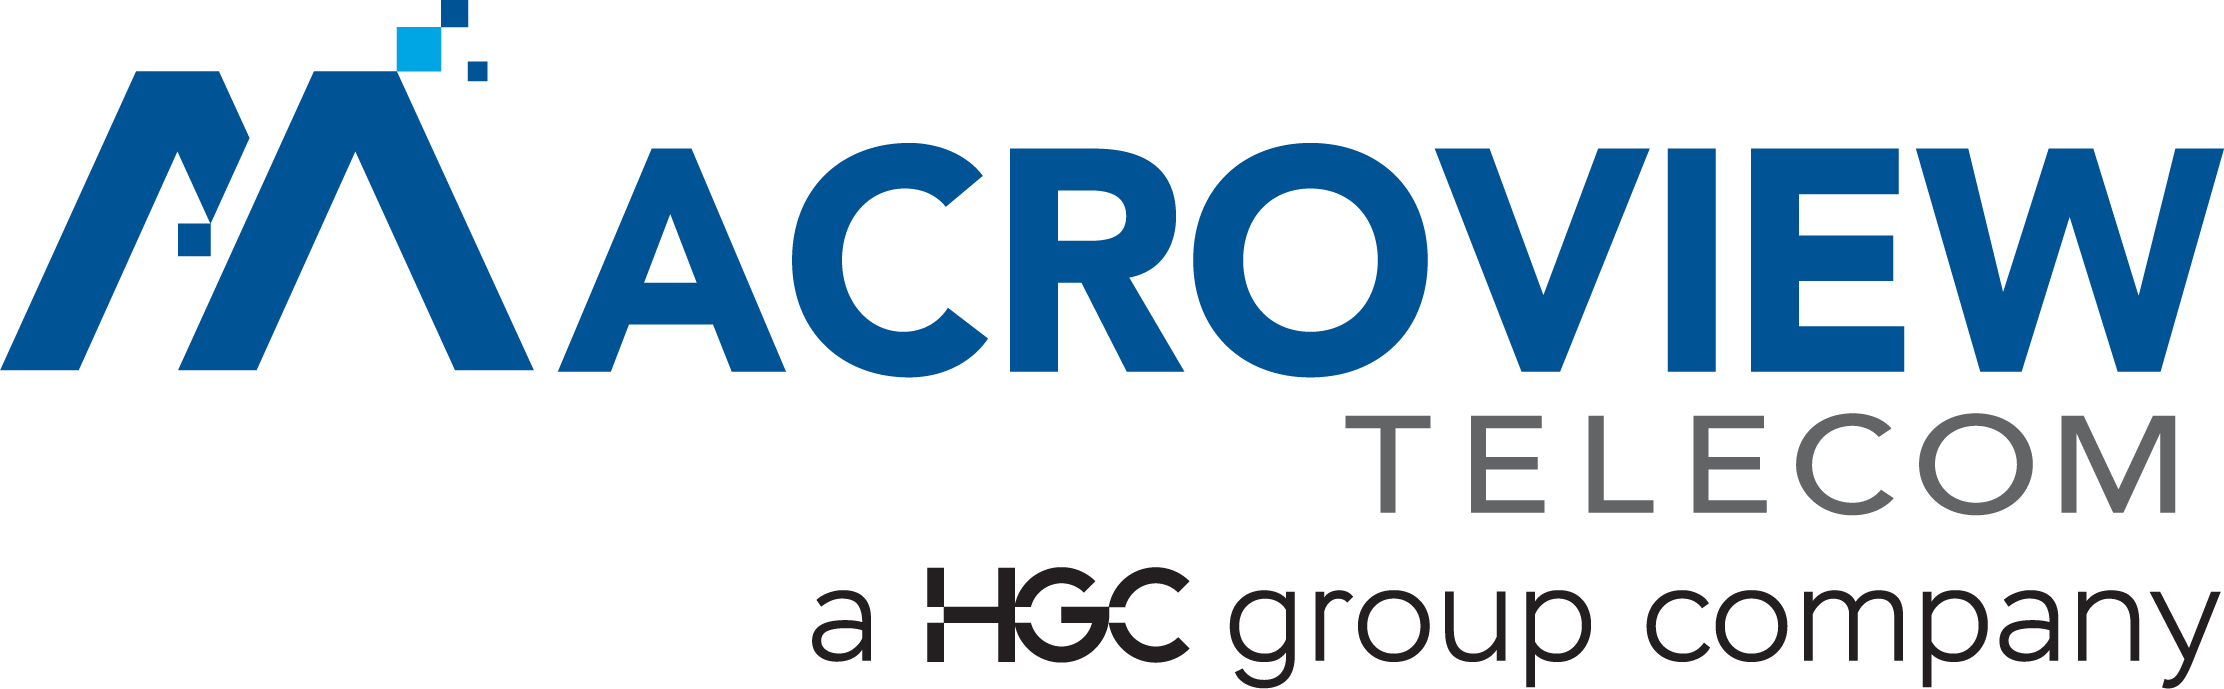 Macroview Telecom Group